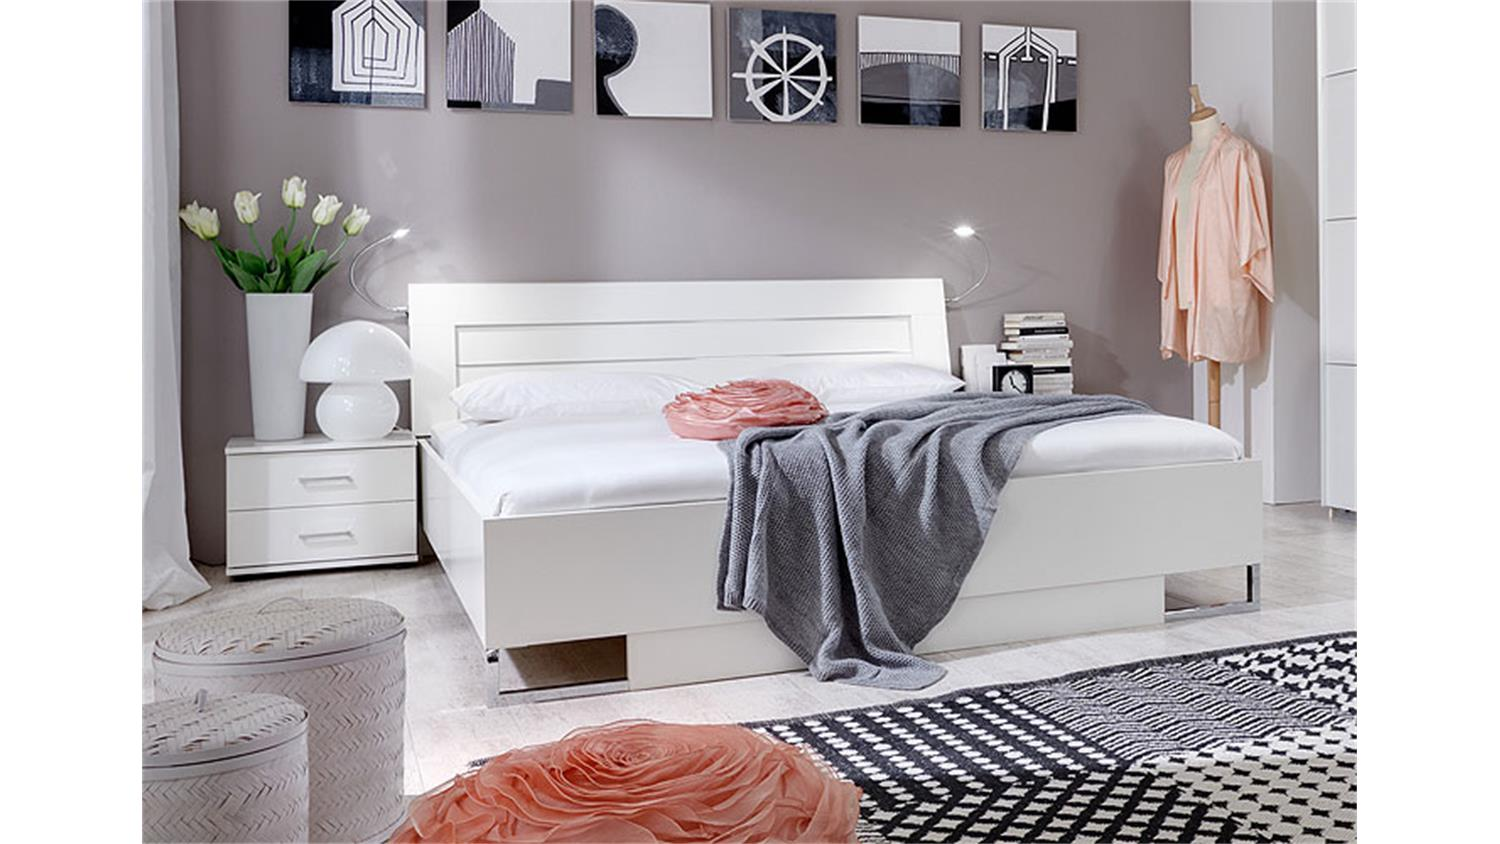 futonbett davos bett 180x200 cm alpinwei und chromf e. Black Bedroom Furniture Sets. Home Design Ideas